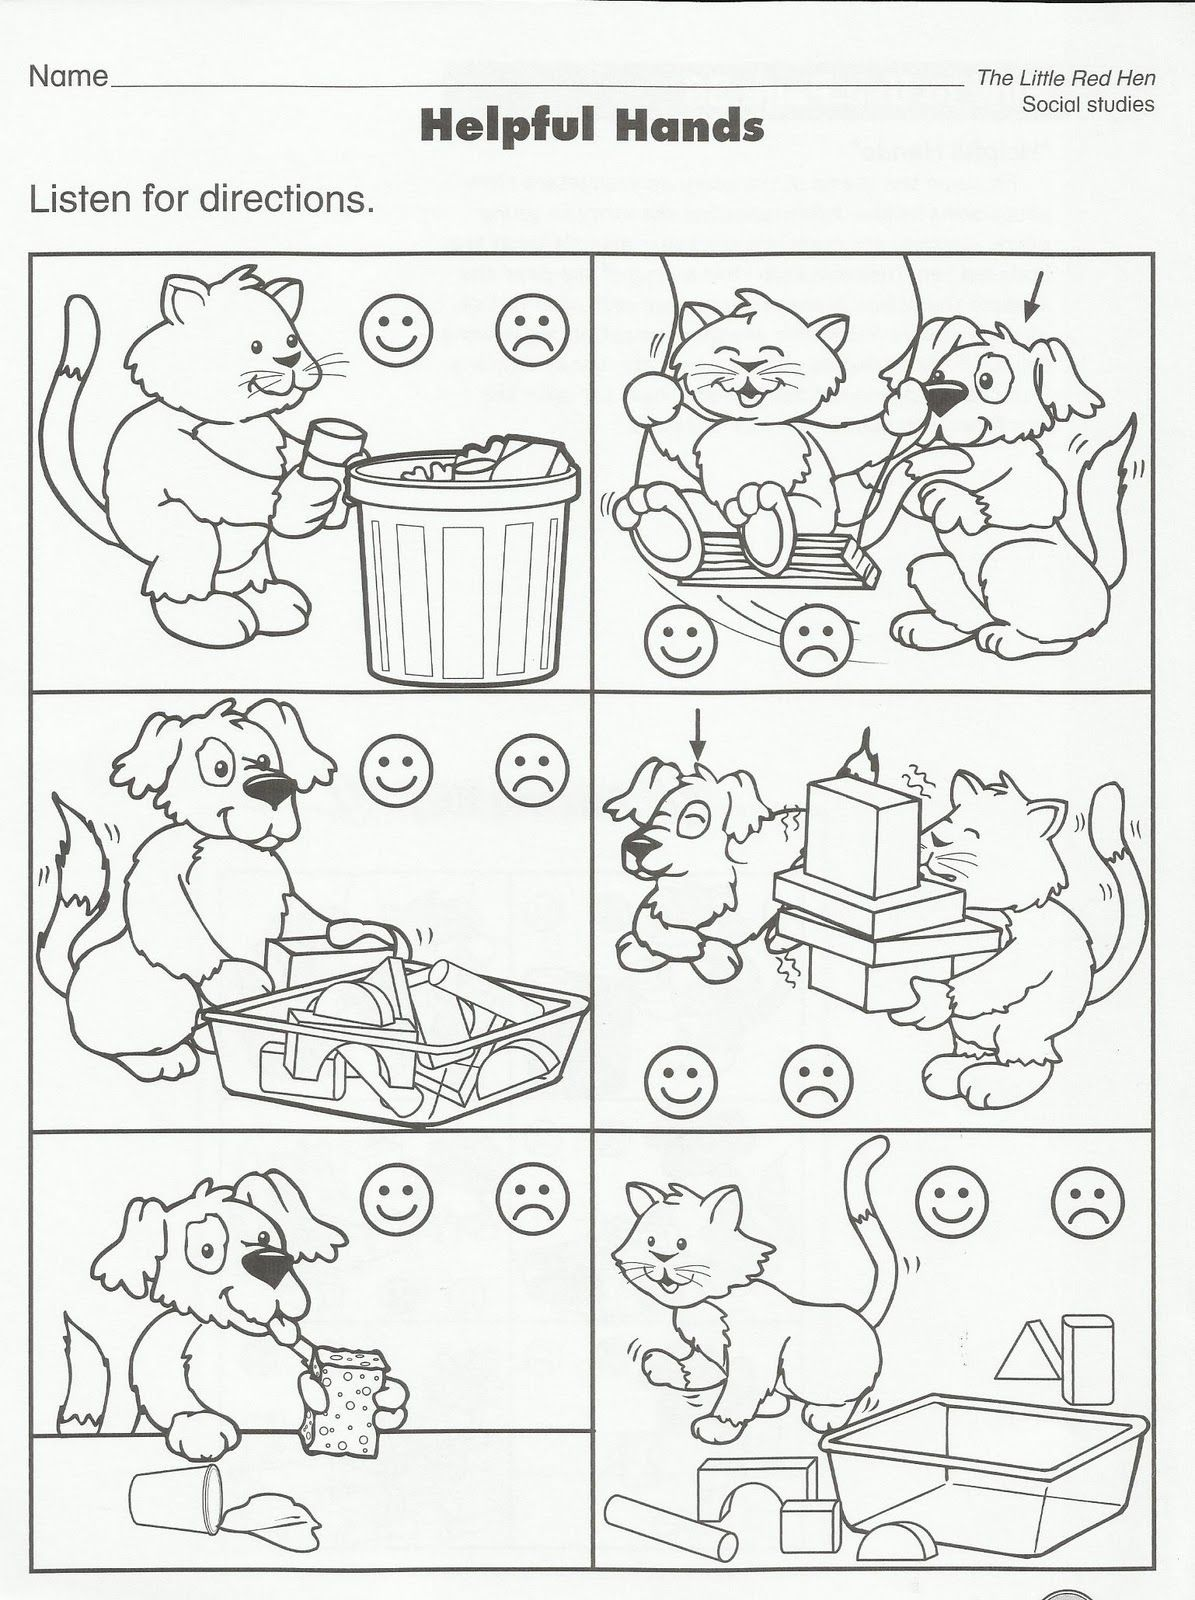 Worksheets Emotions Worksheets For Preschoolers squish preschool ideas cats pinterest school pet theme and ideas